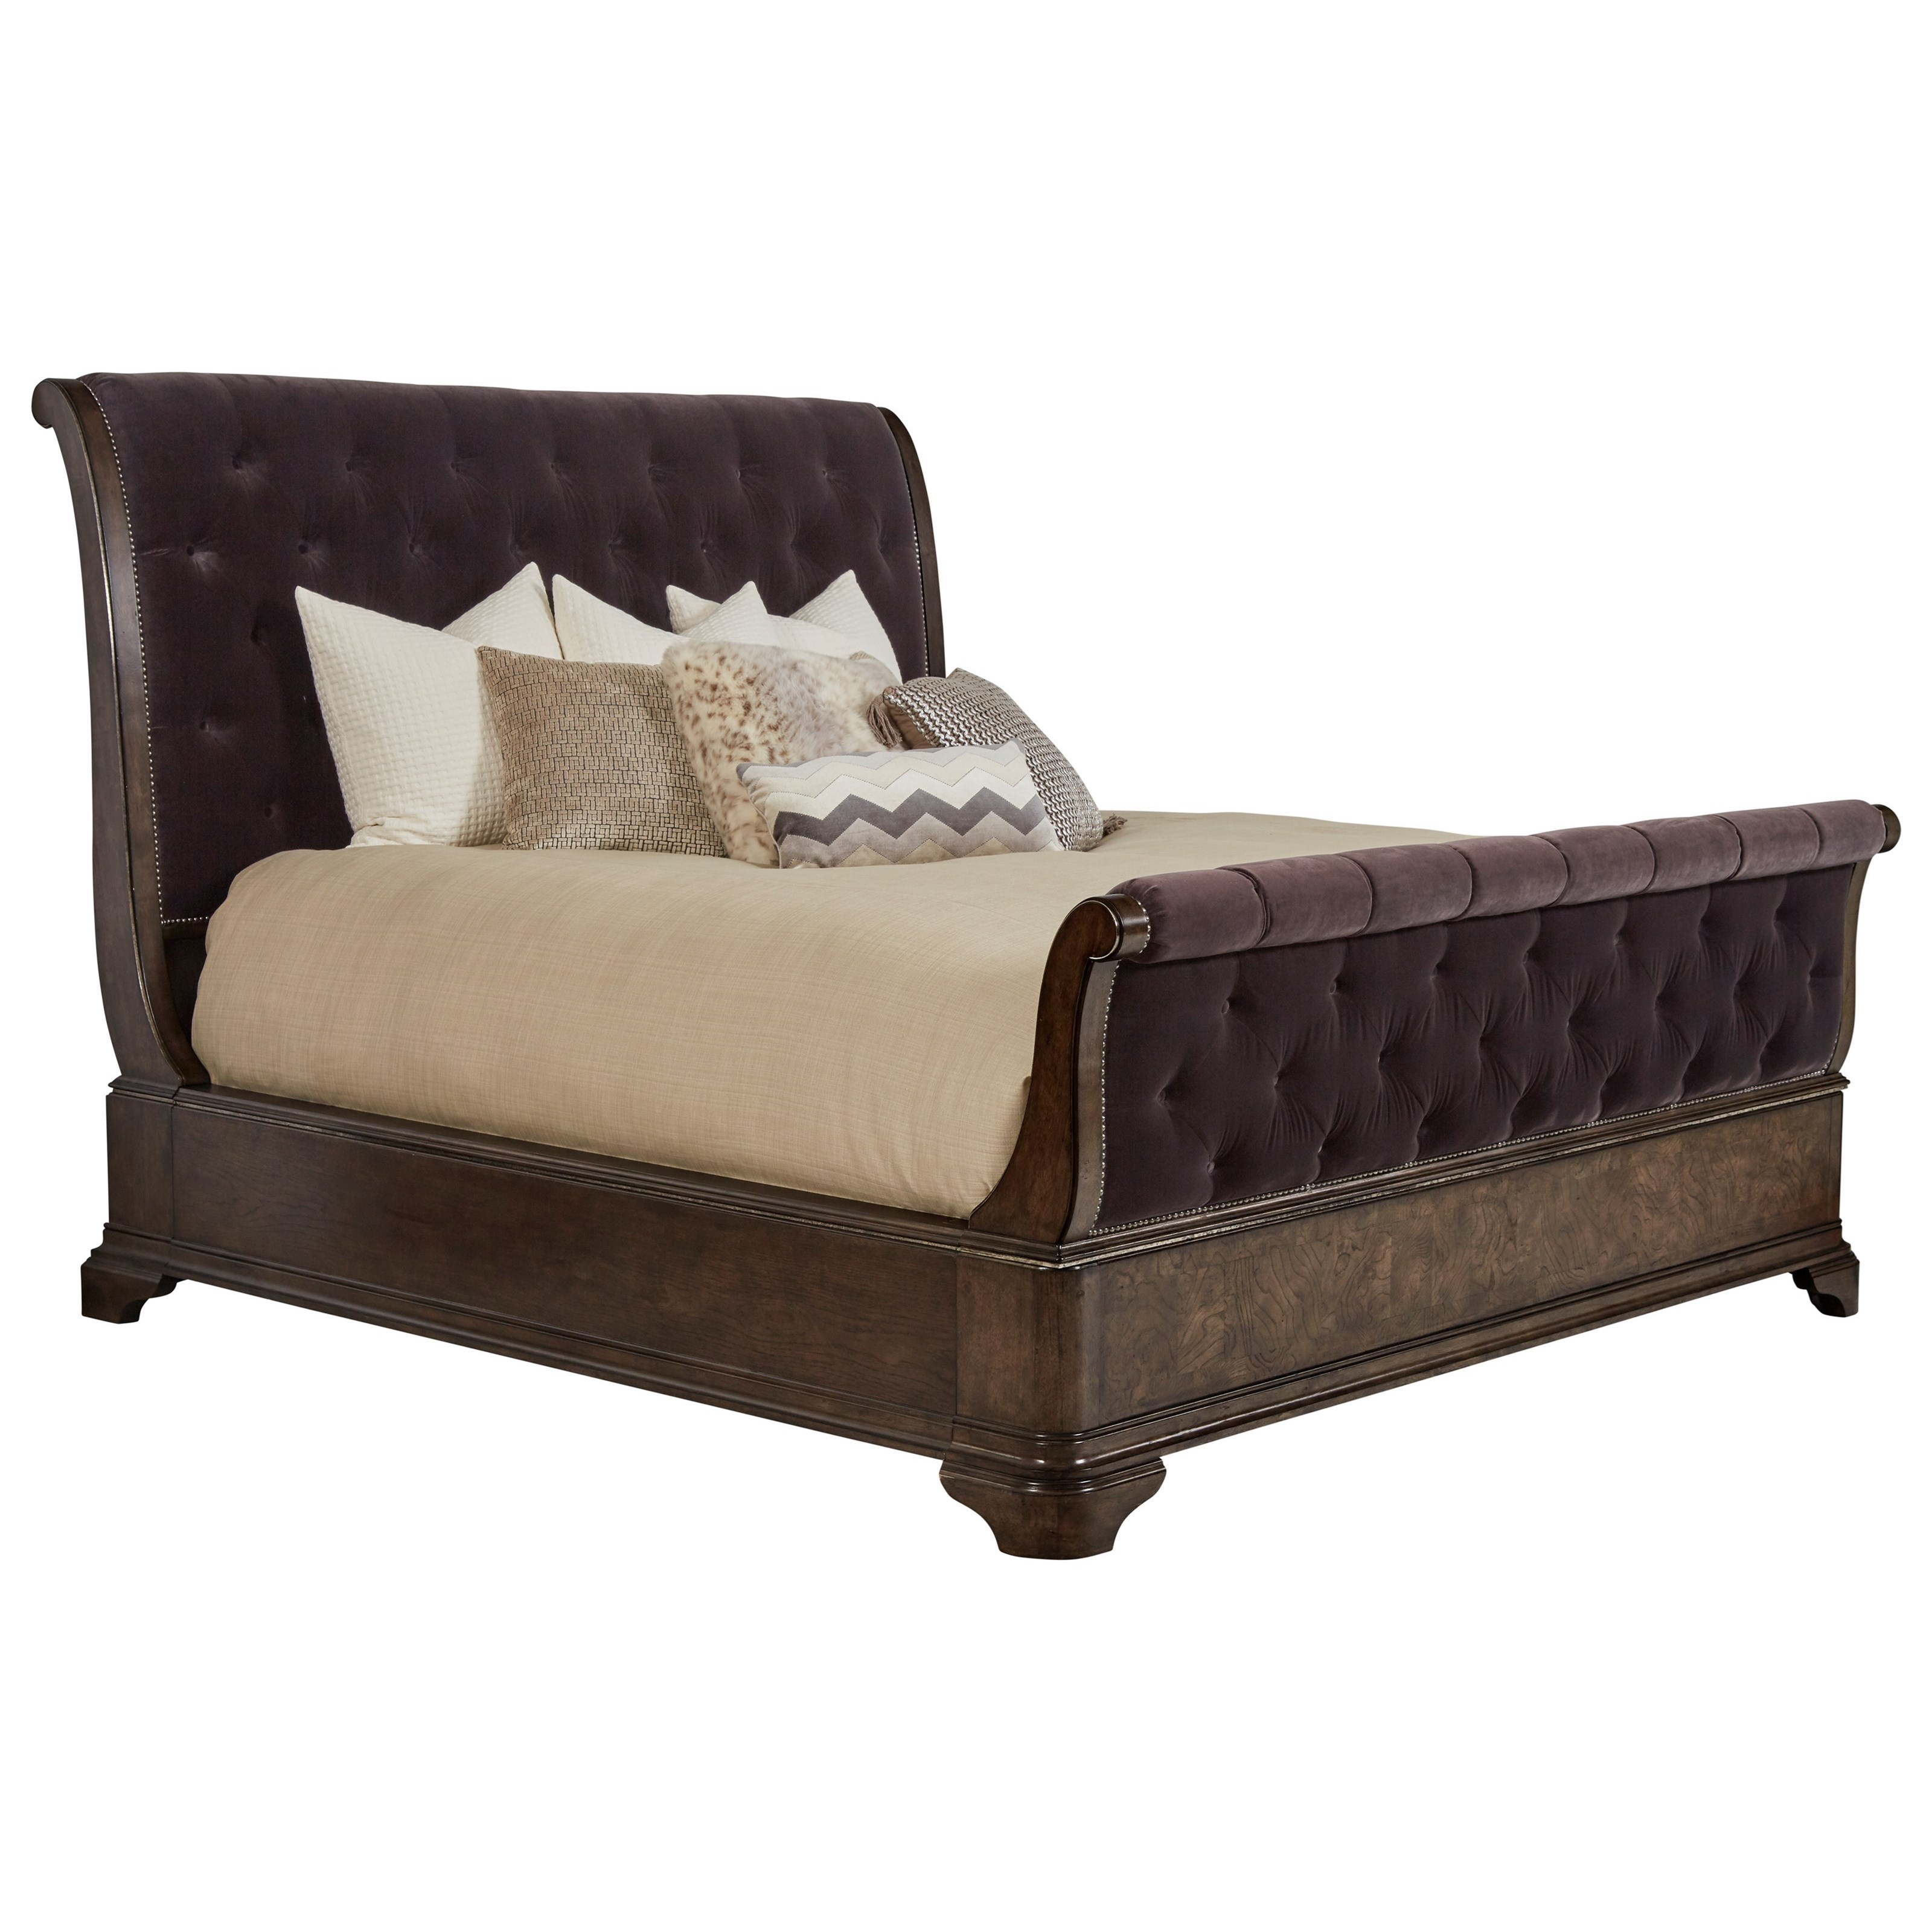 Landmark Cal King Upholstered Sleigh Bed by A.R.T. Furniture Inc at Hudson's Furniture